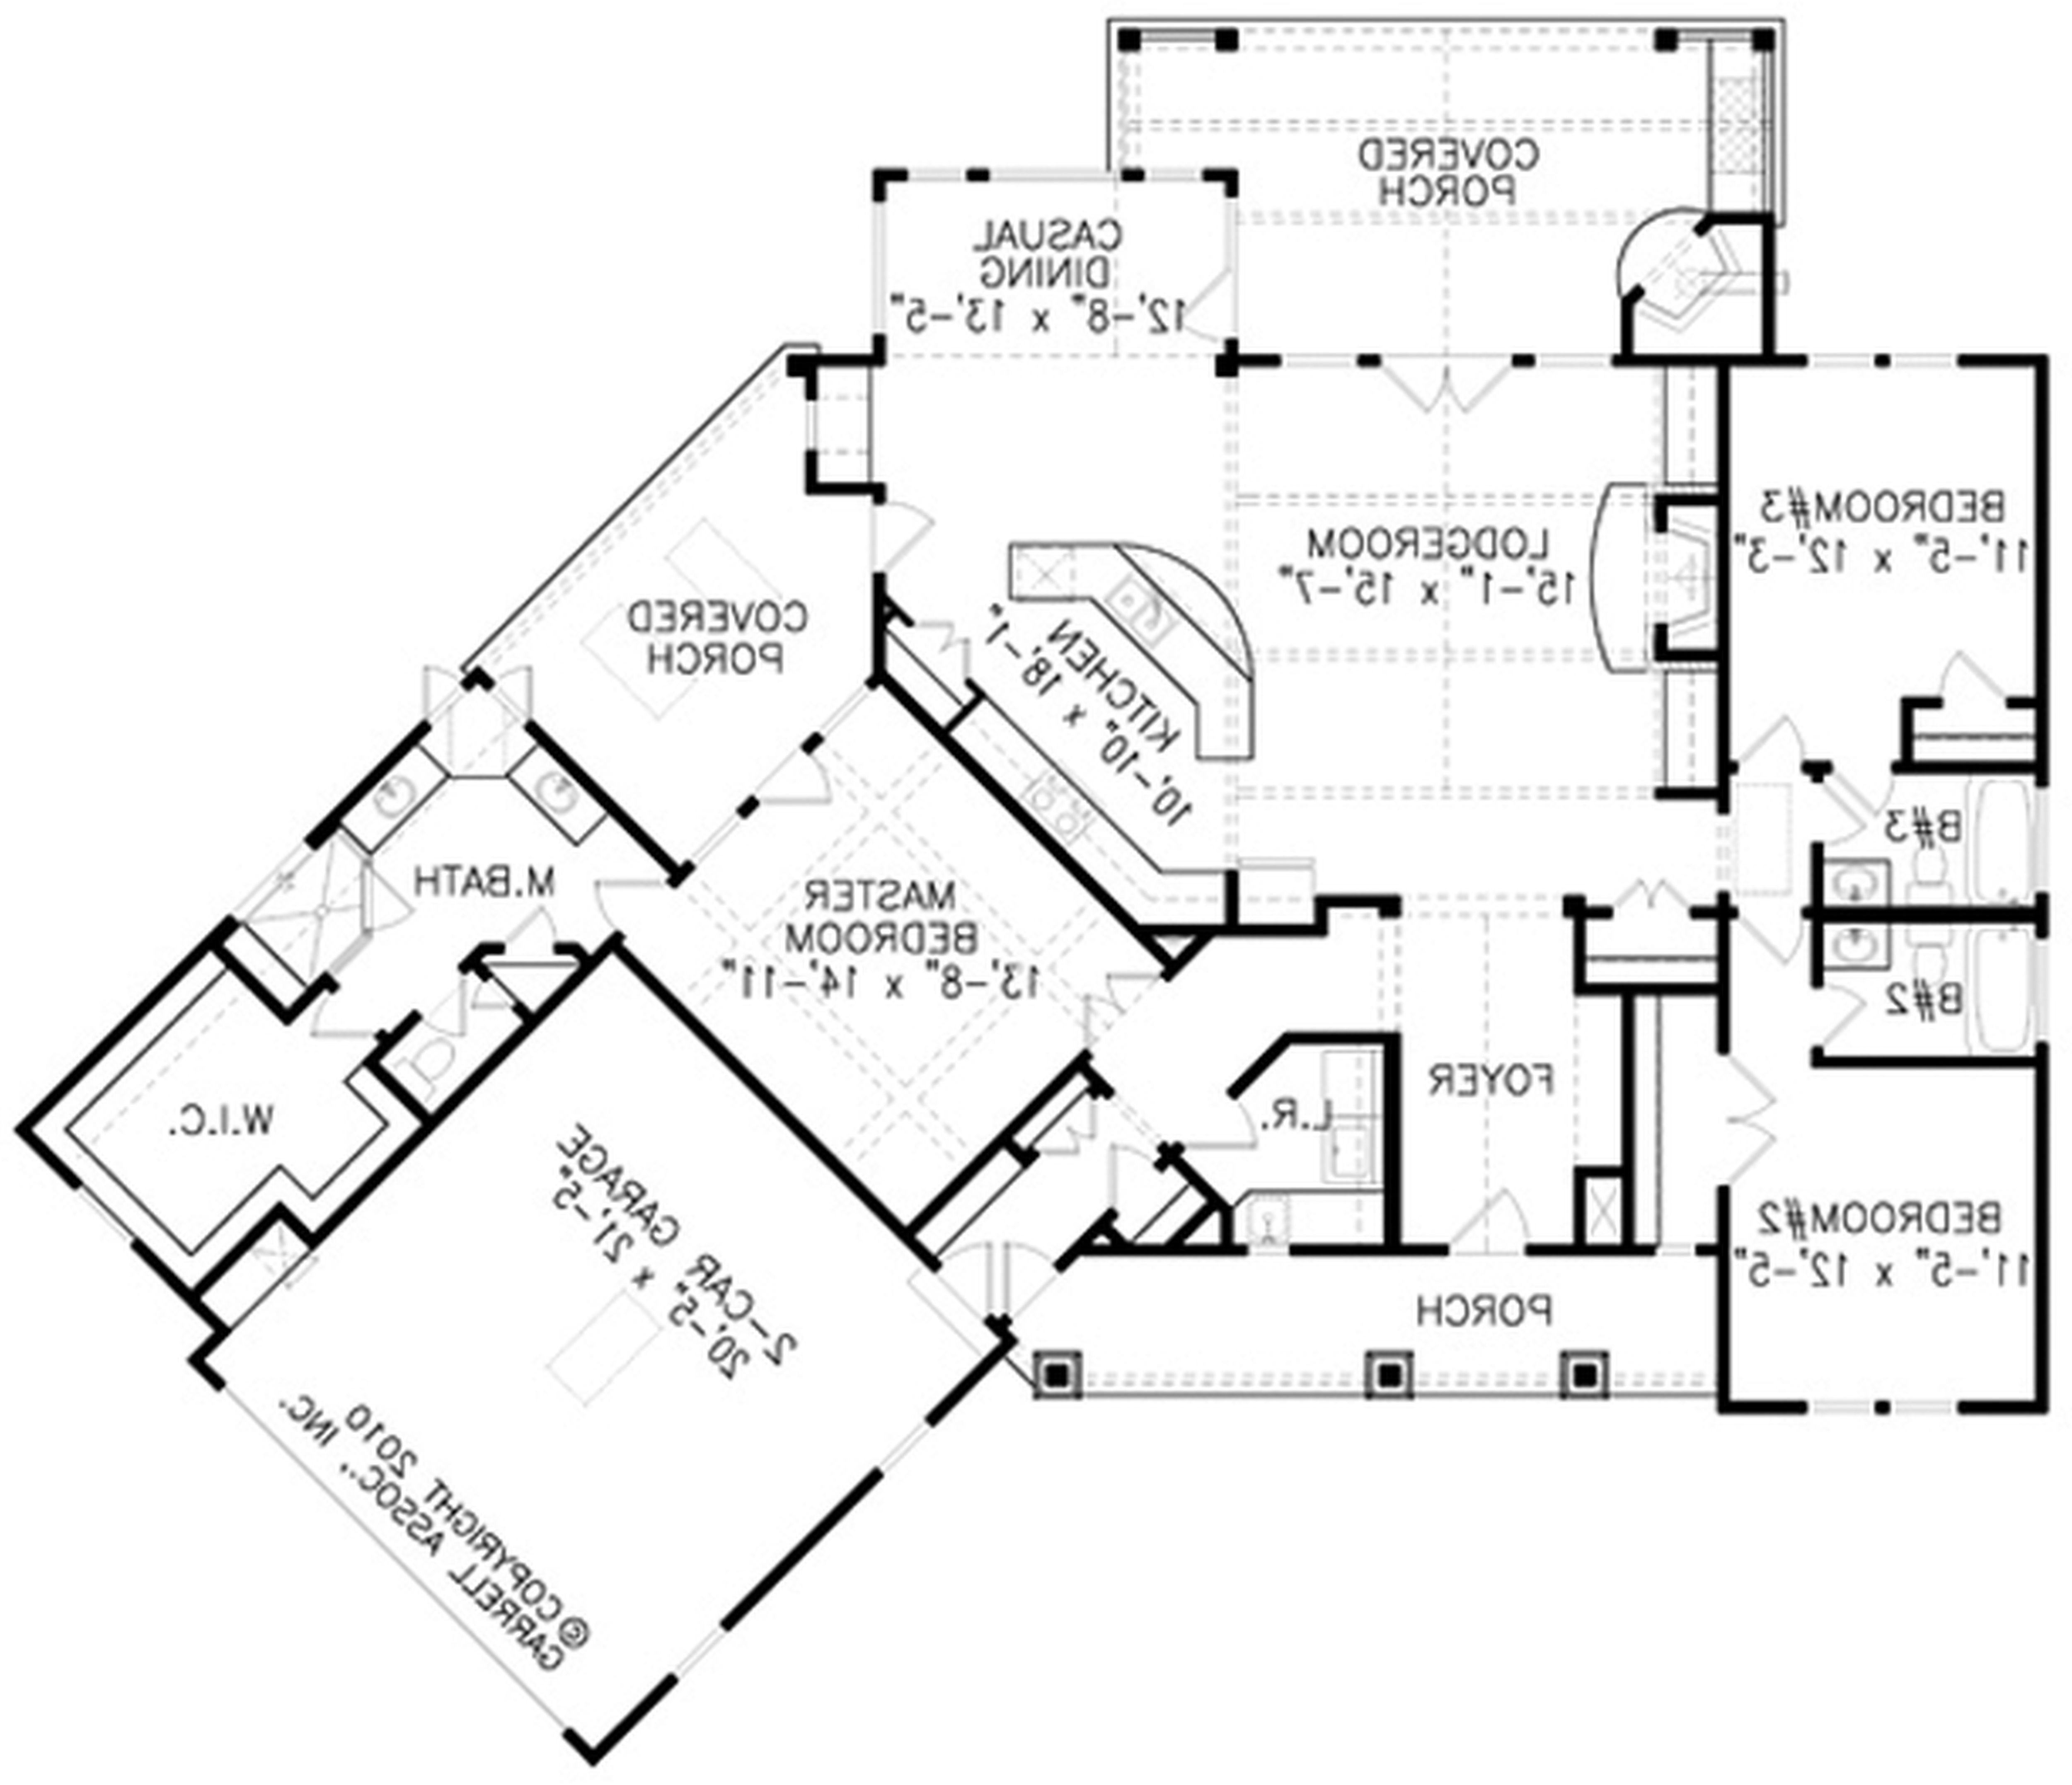 Architectural Design 3 Bedroom House In India